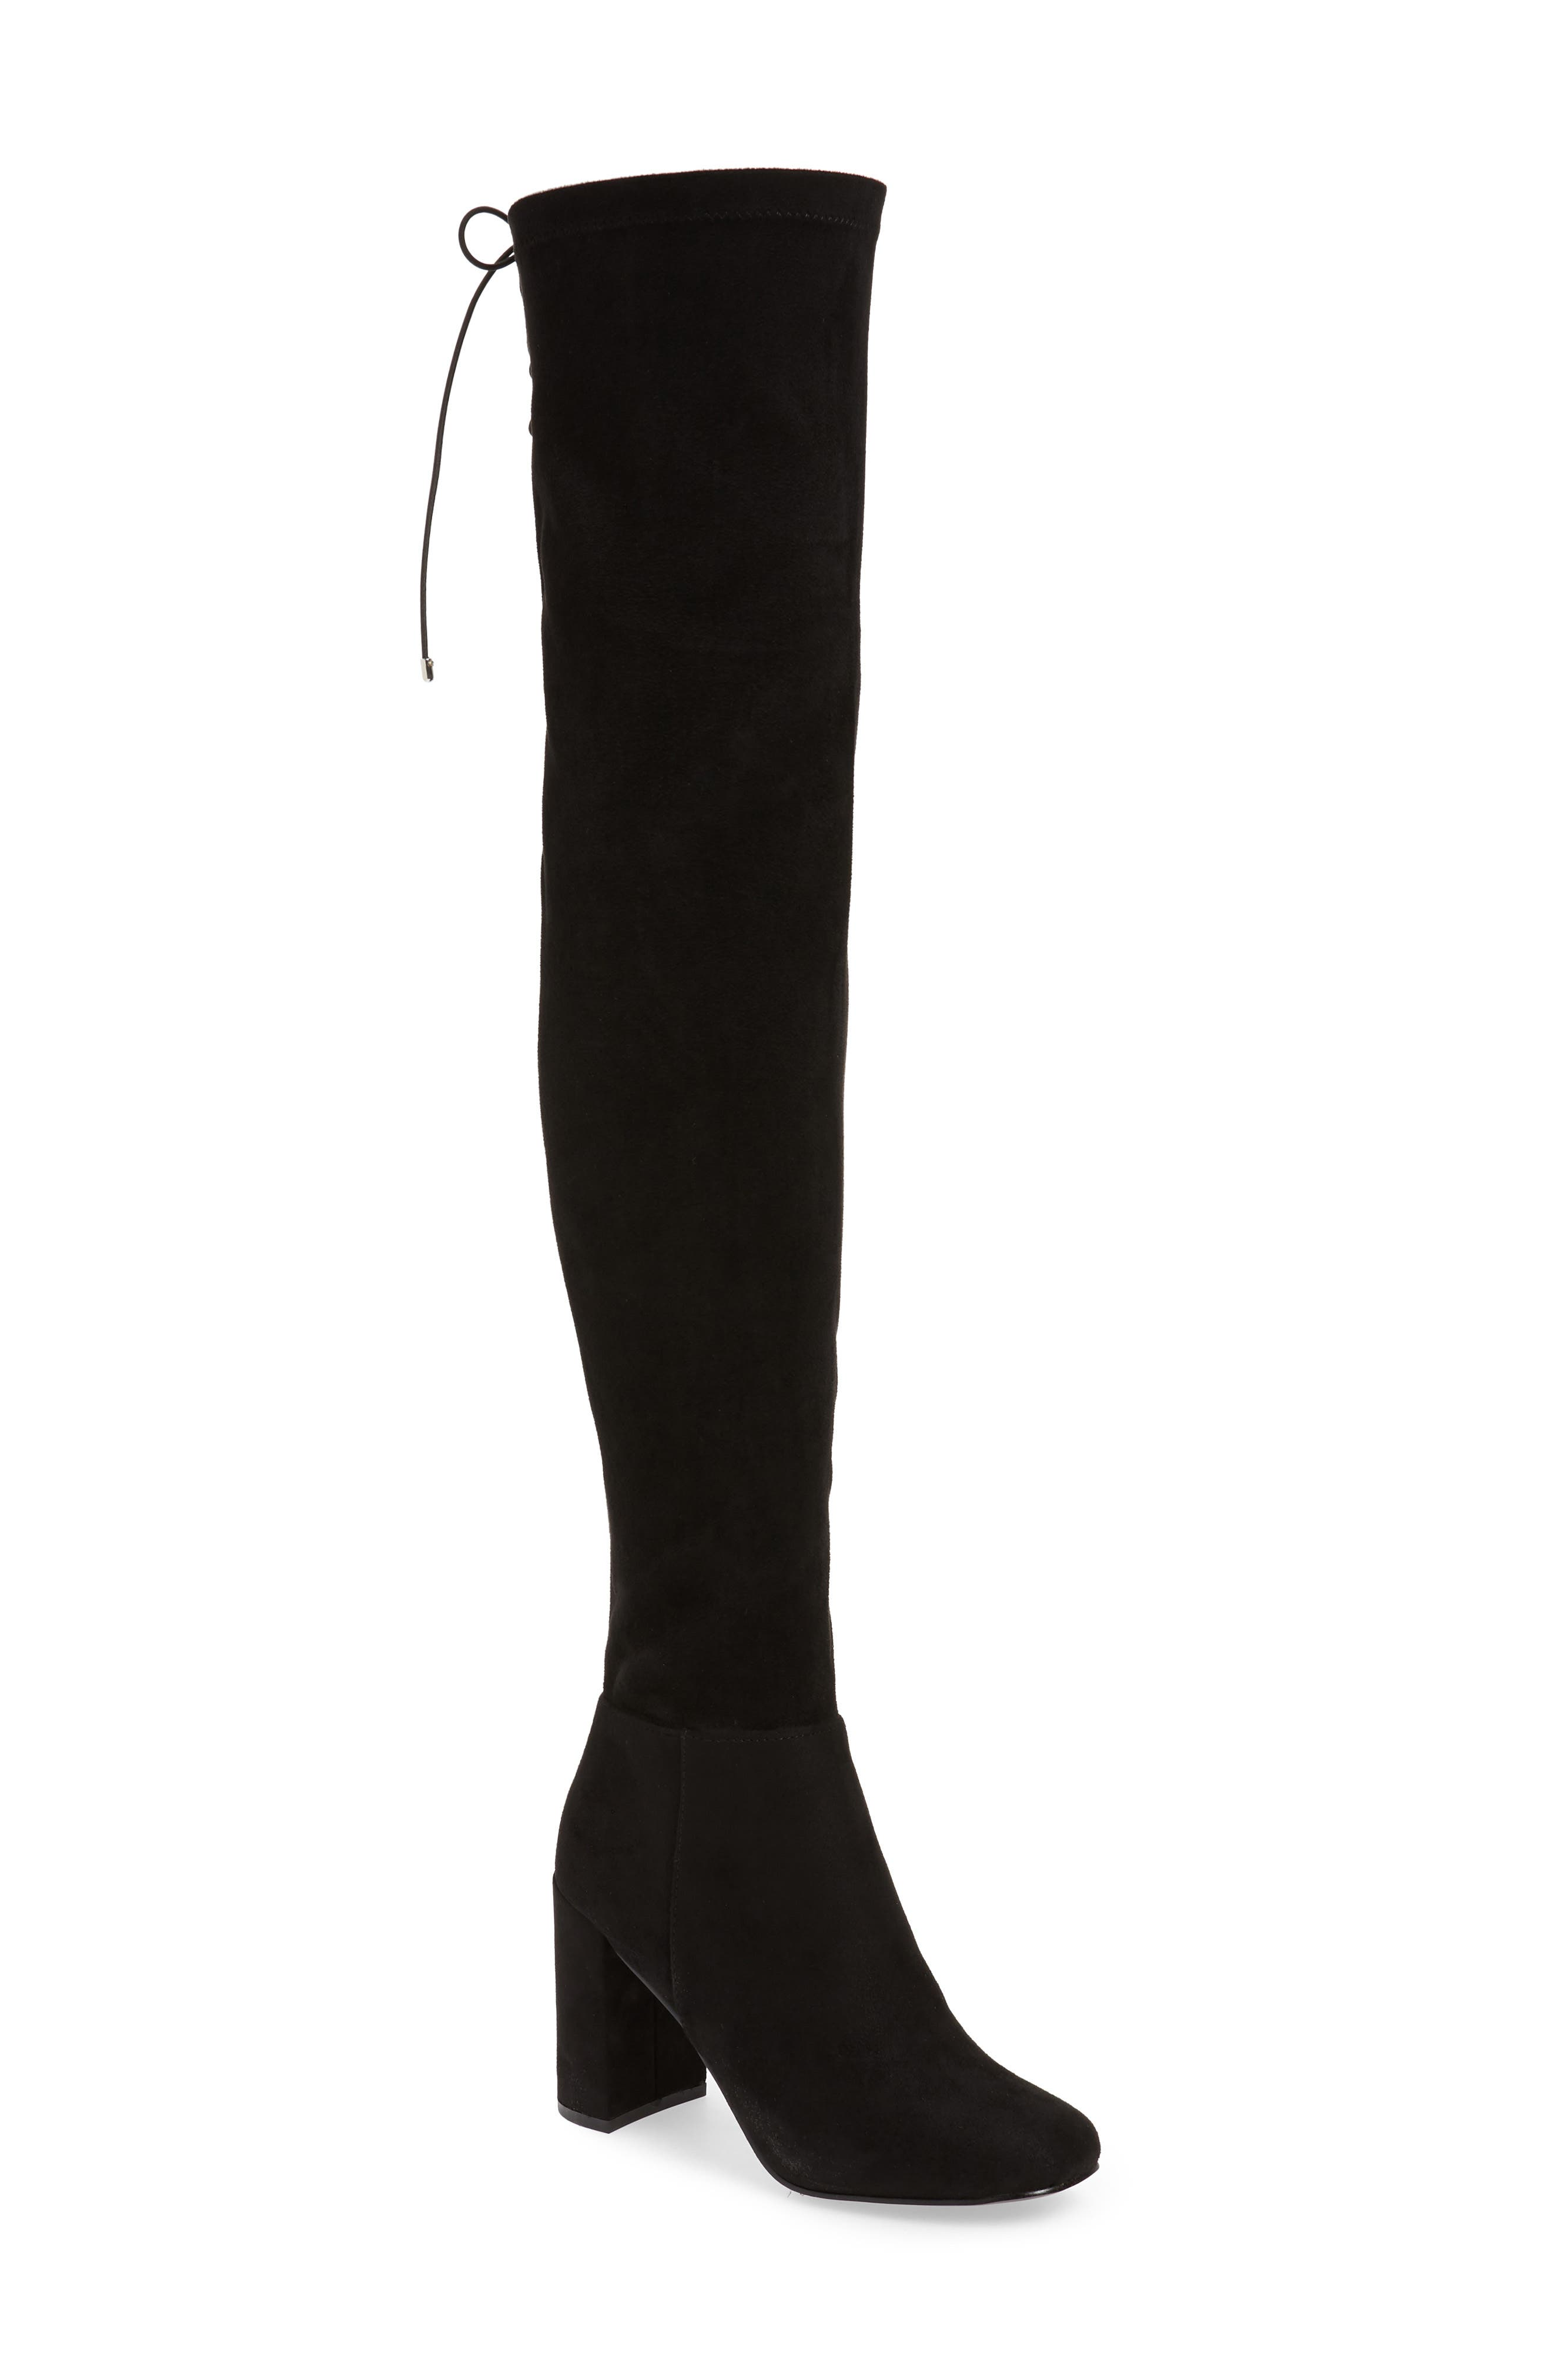 King Over the Knee Boot,                             Main thumbnail 1, color,                             BLACK